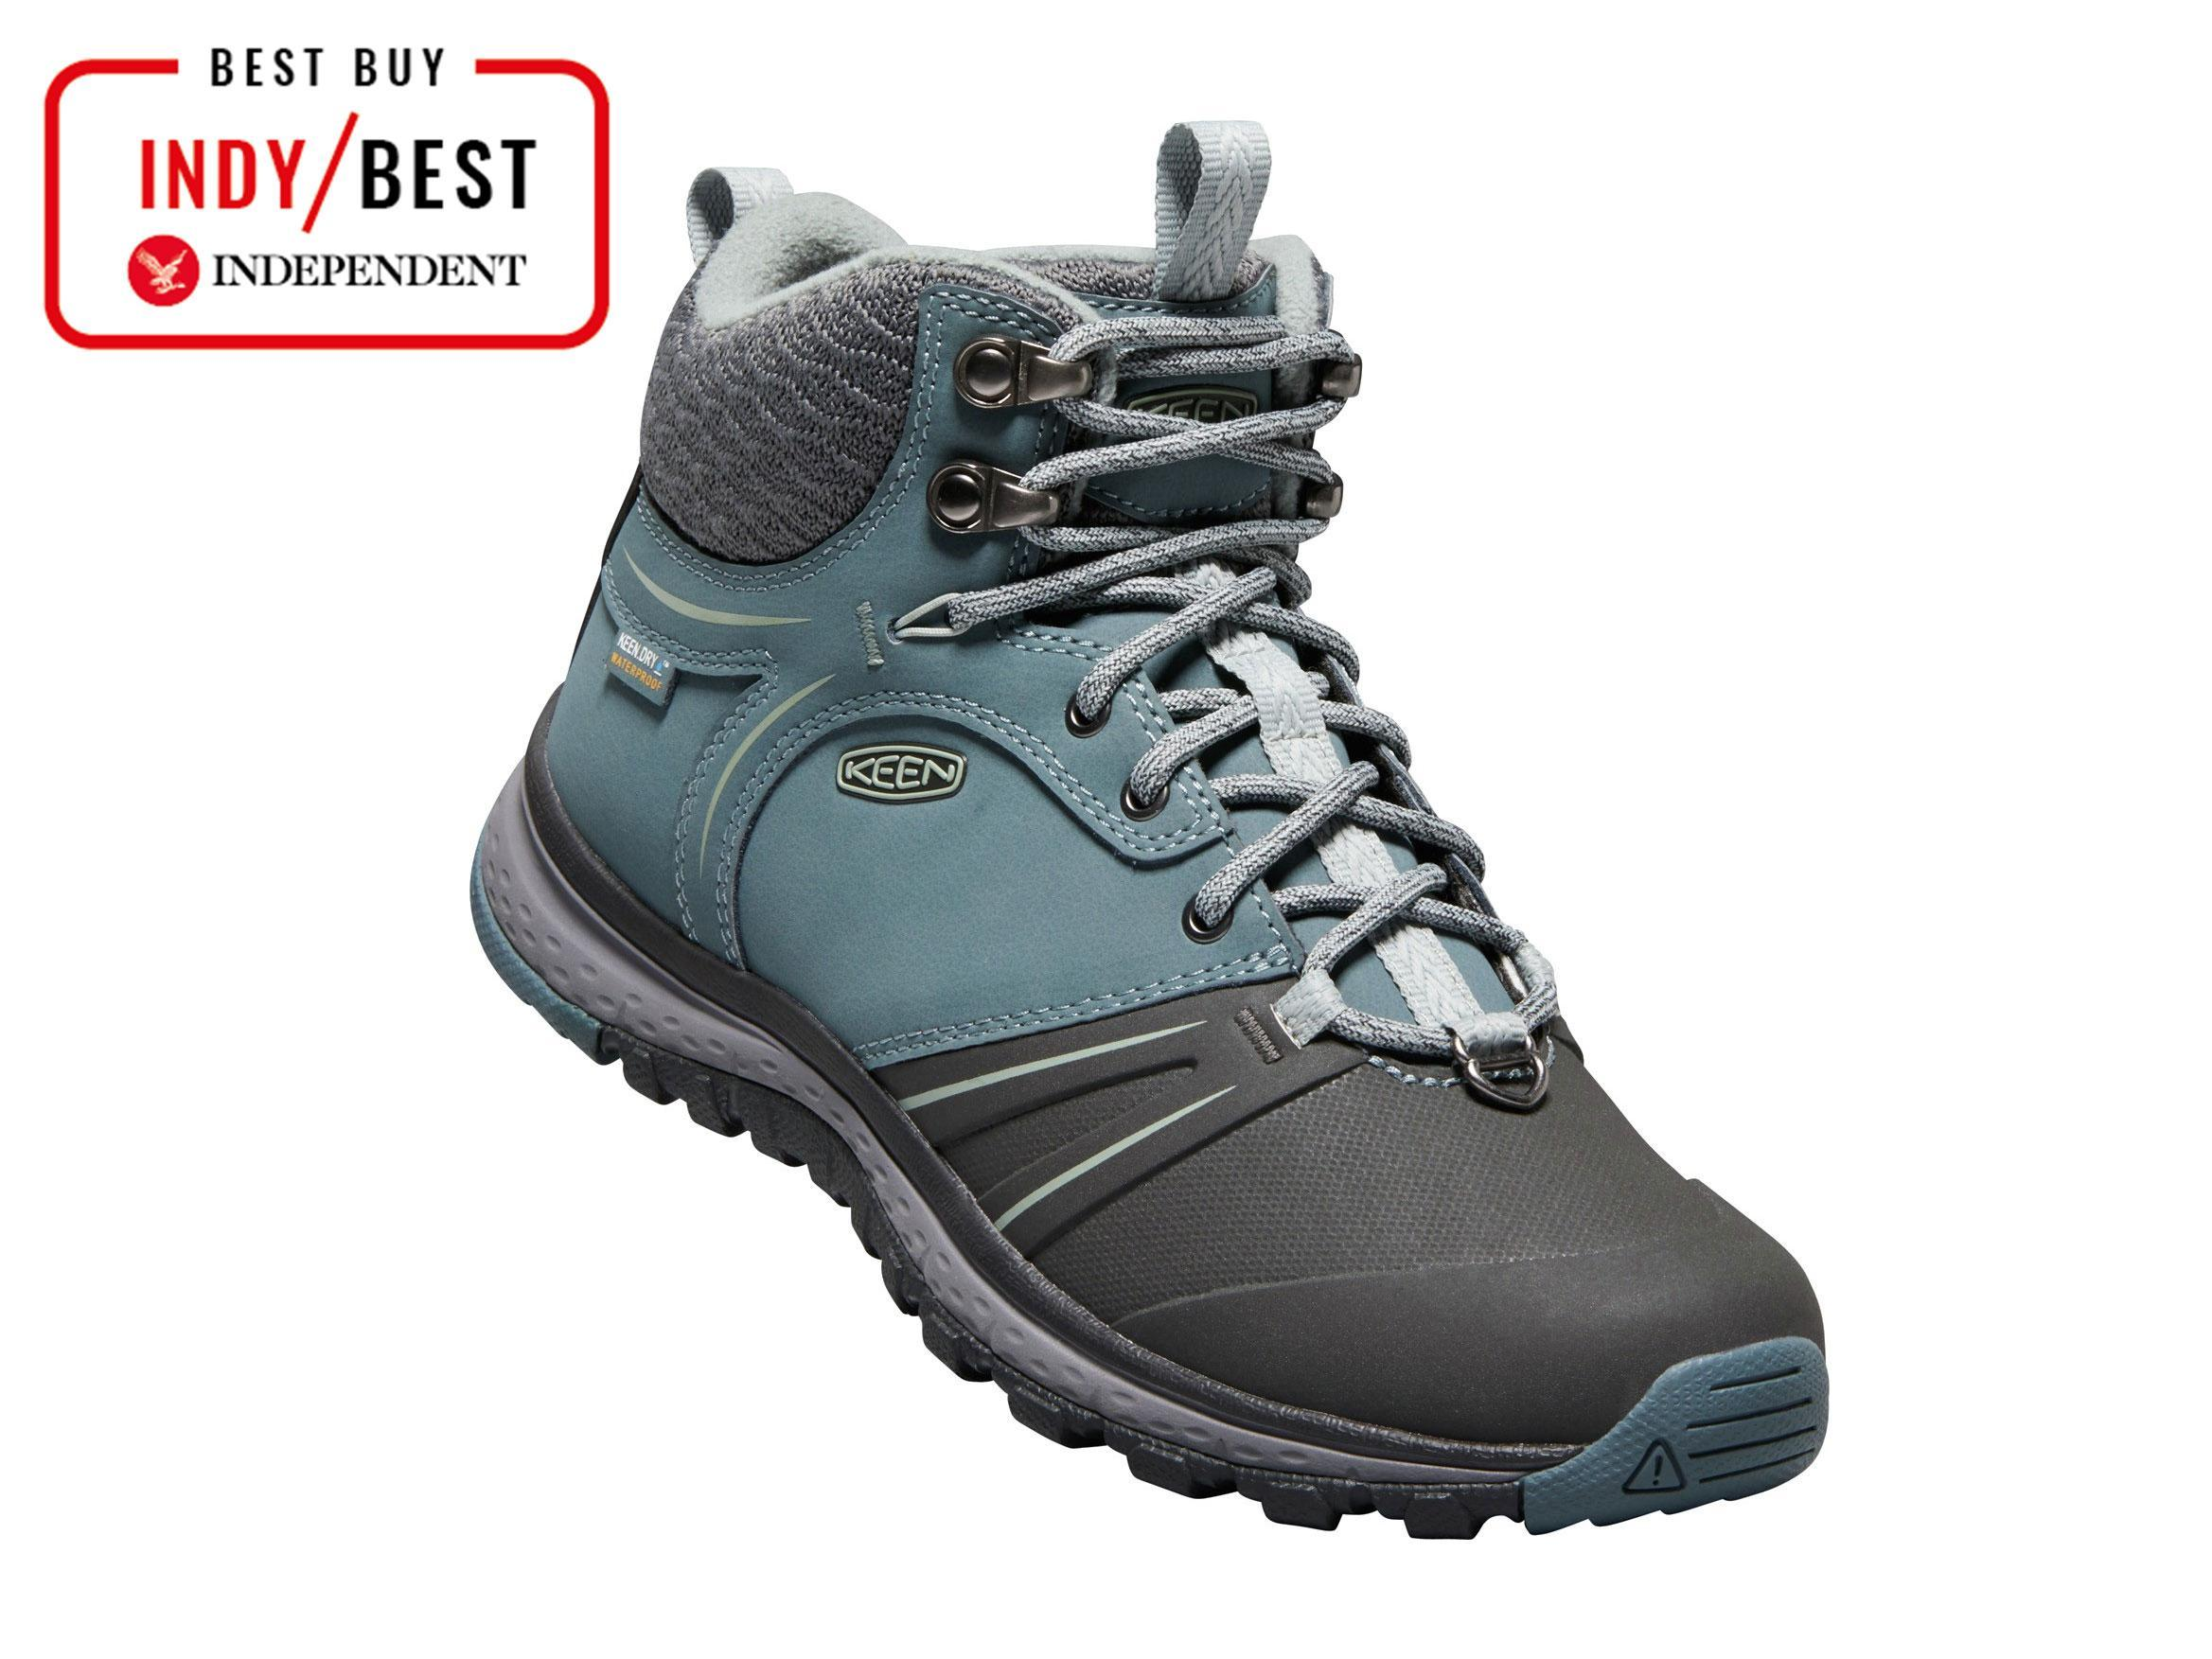 fda8ab5cf 10 best snow boots | The Independent